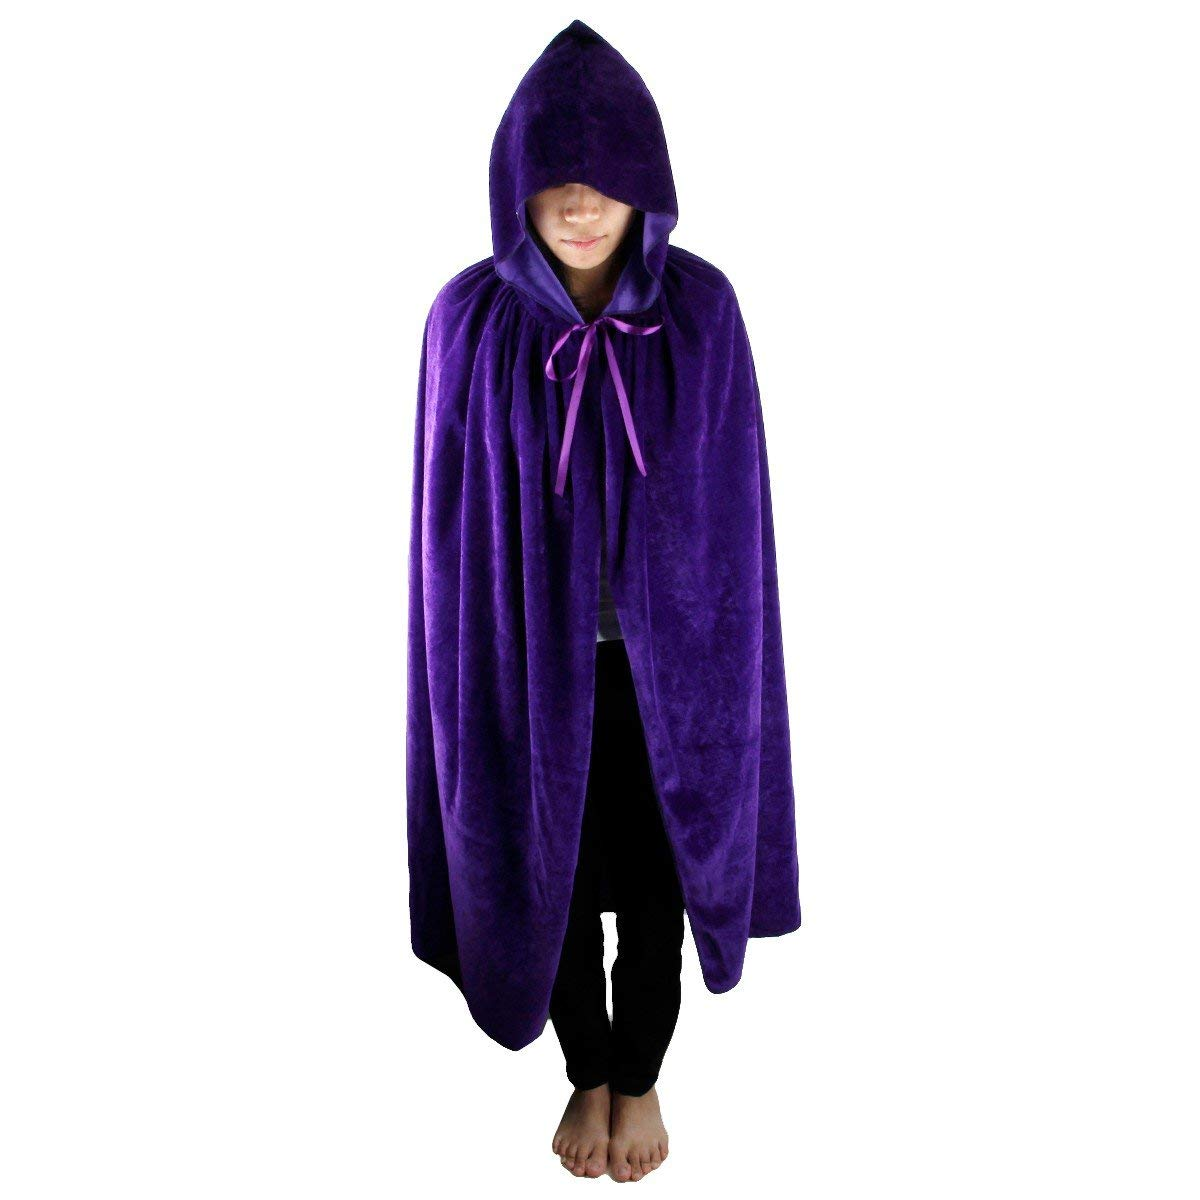 Samtree Christmas Halloween Costumes Cape for Kids,Velvet Hooded Cosplay Party Cloak